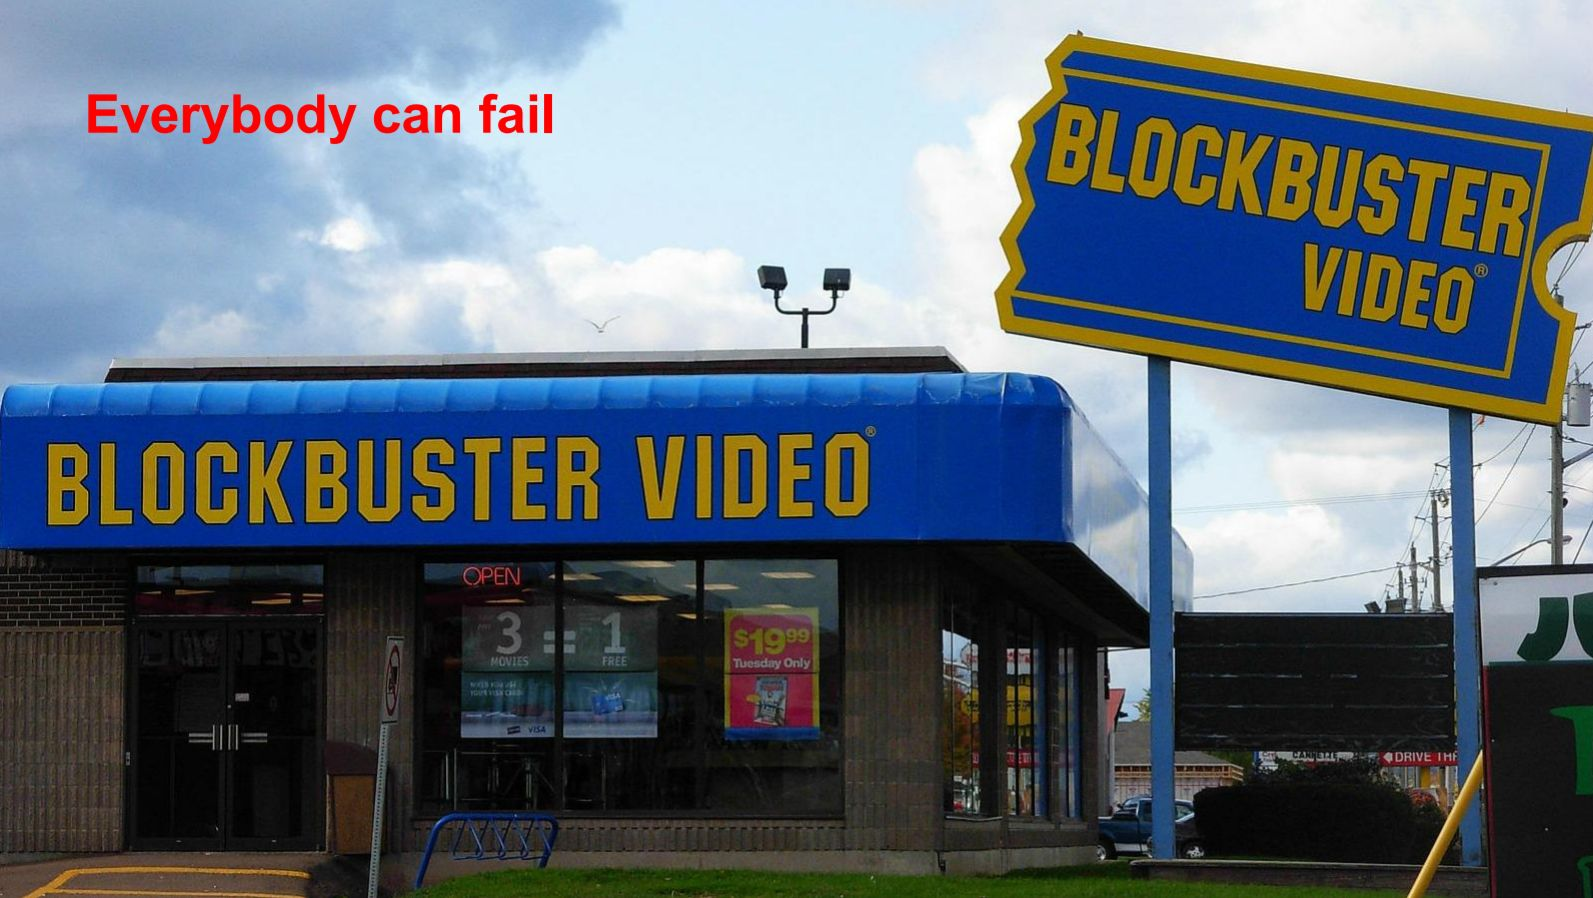 An image of a Blockbuster store illustrates the point that any business can fail.